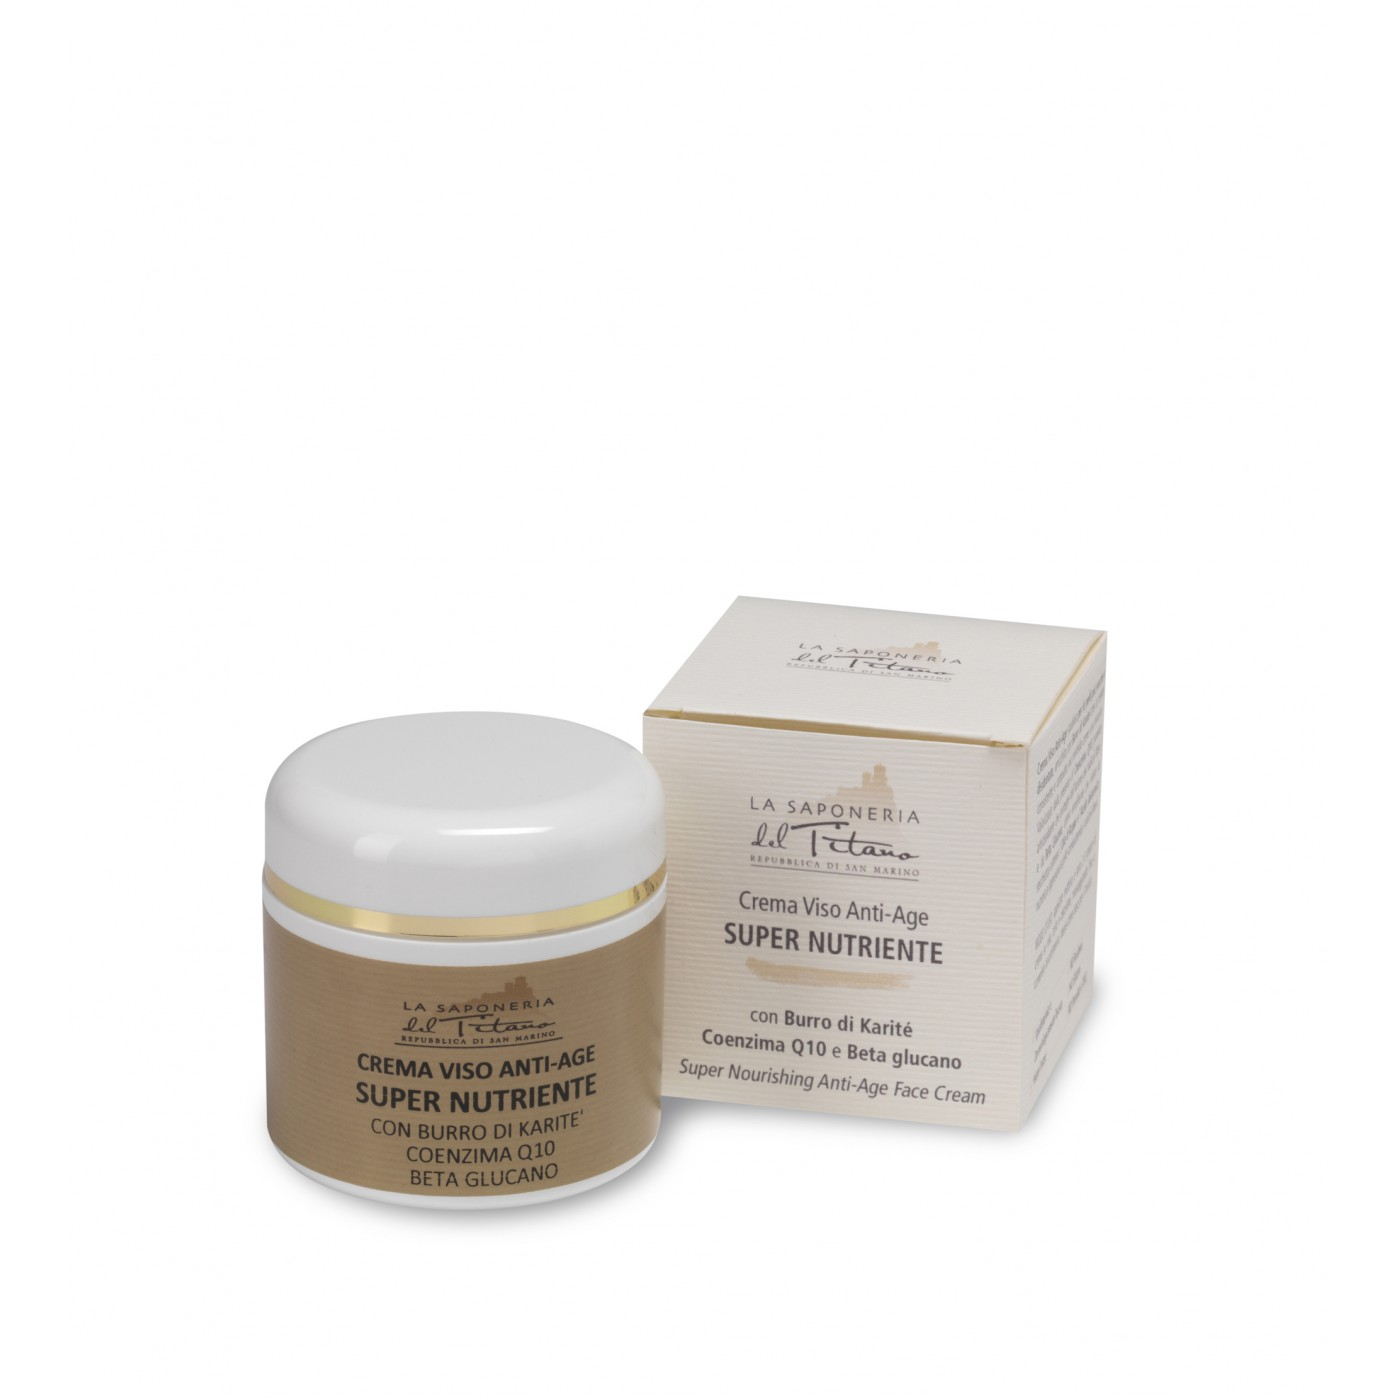 Crema Viso Anti-Age Super Nutriente